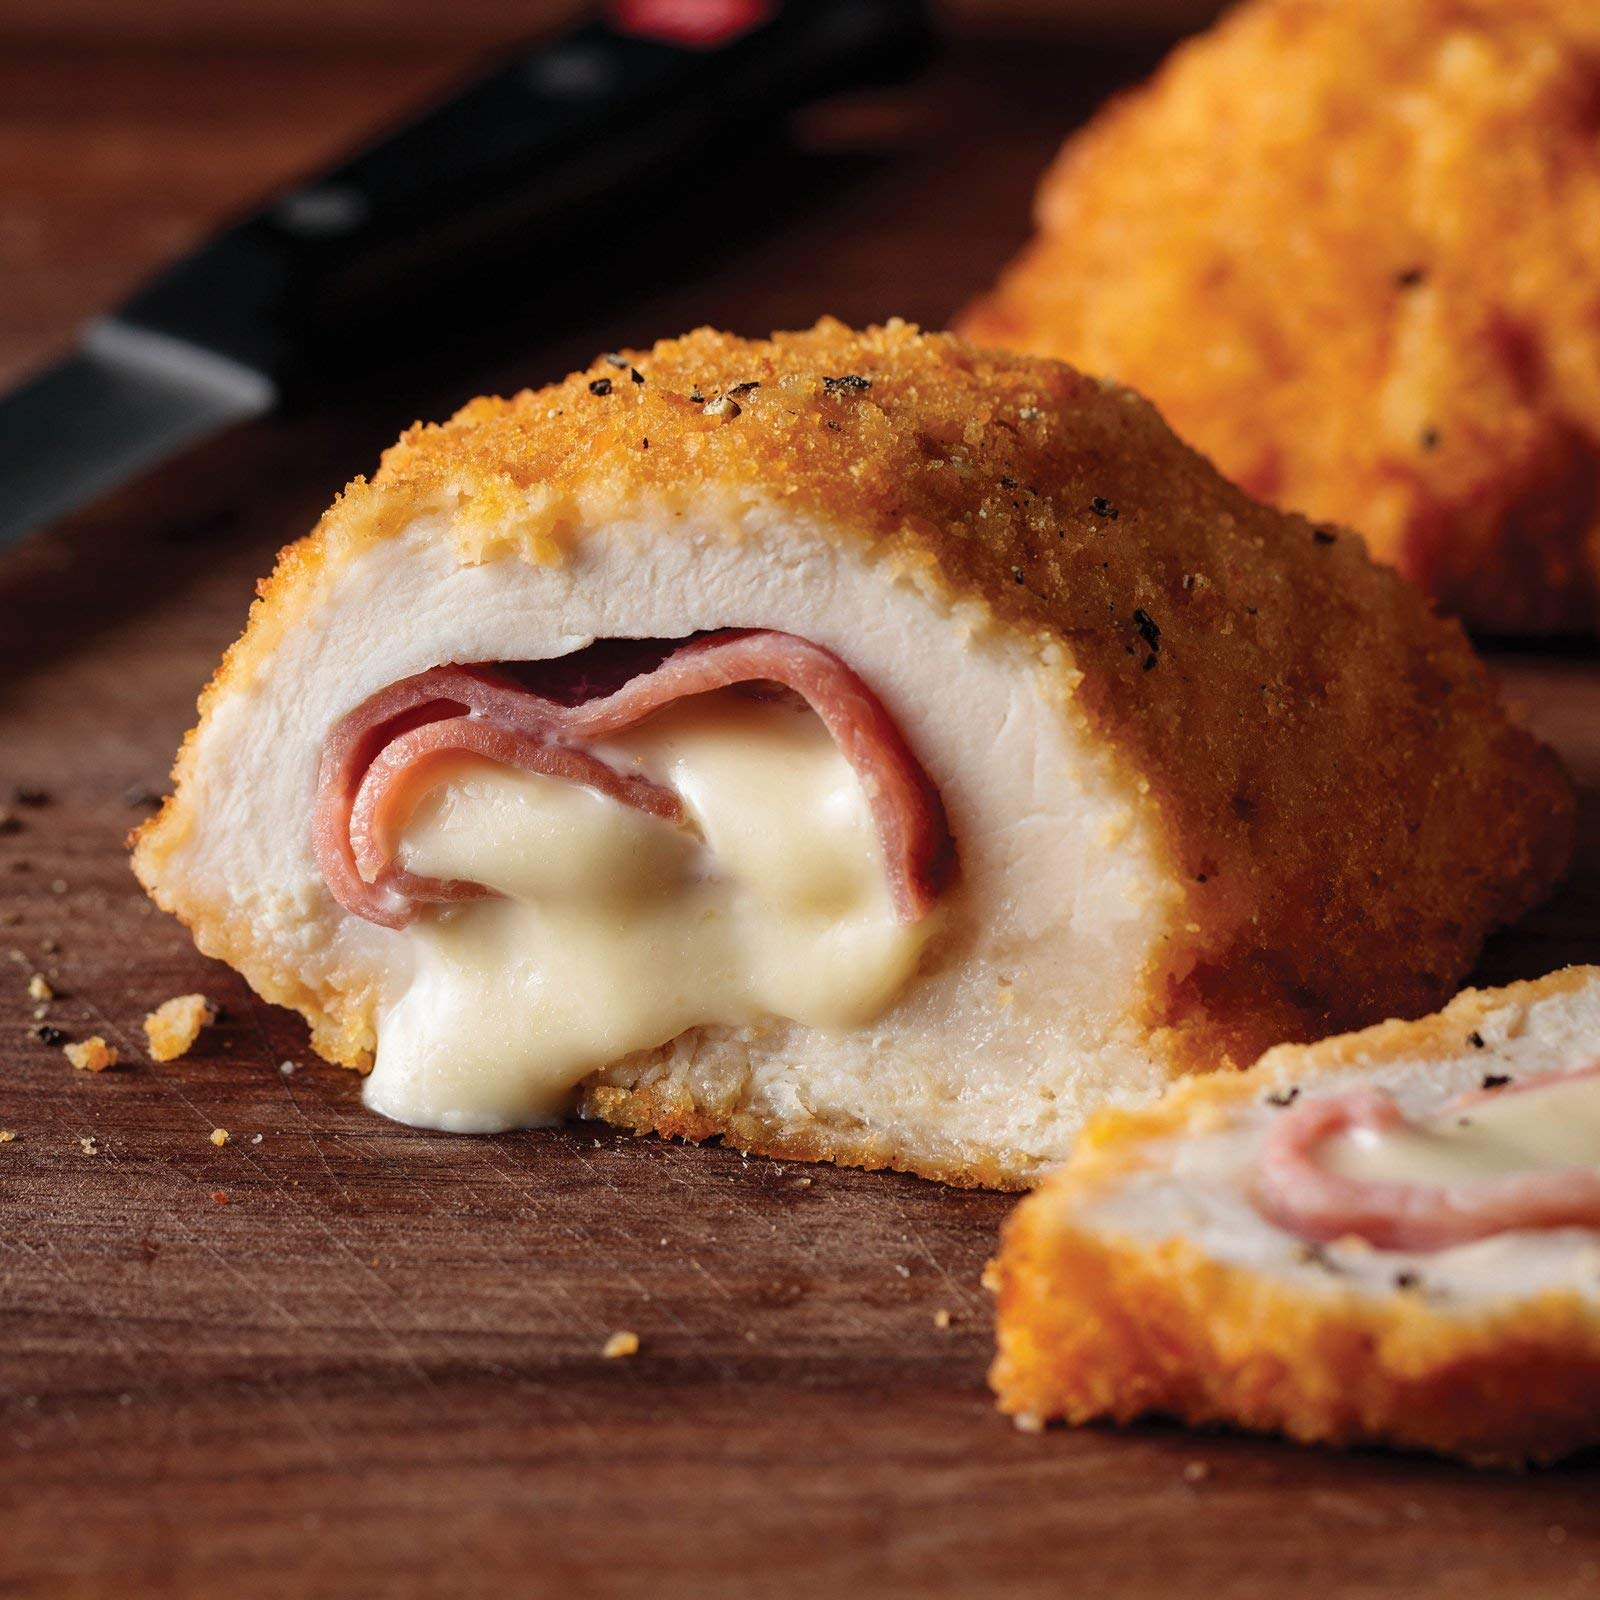 Omaha Steaks 12 (7.75 oz.) Chicken Cordon Bleu